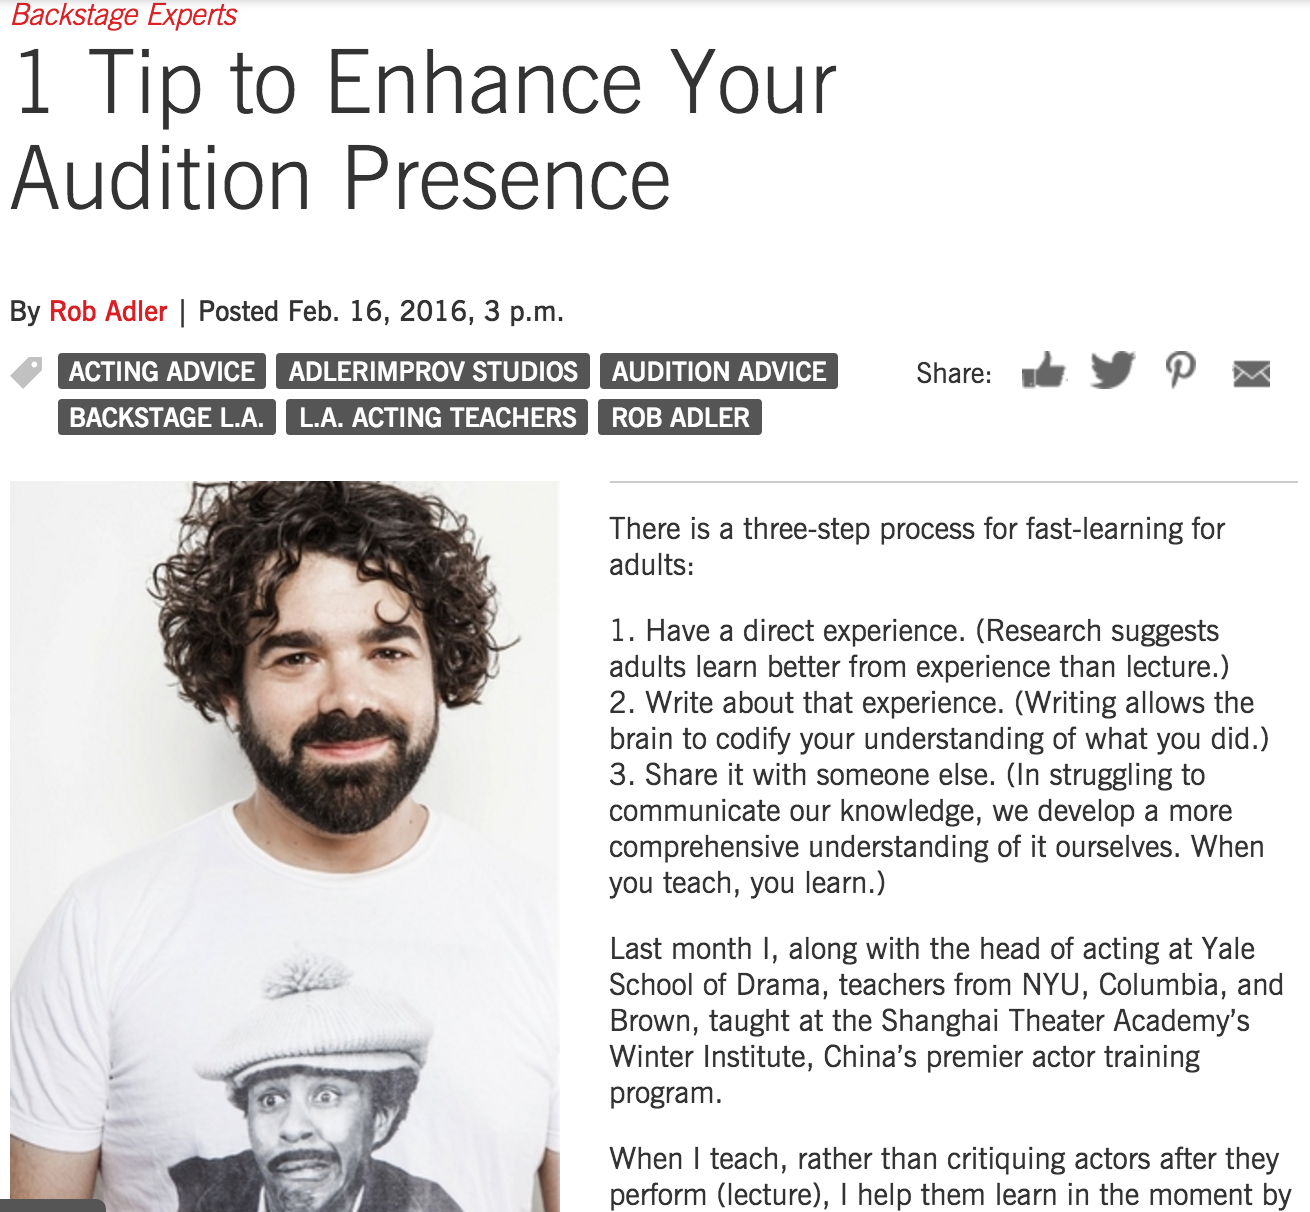 Rob Adler - Backstage - One Tip to Enhance Audition Presence